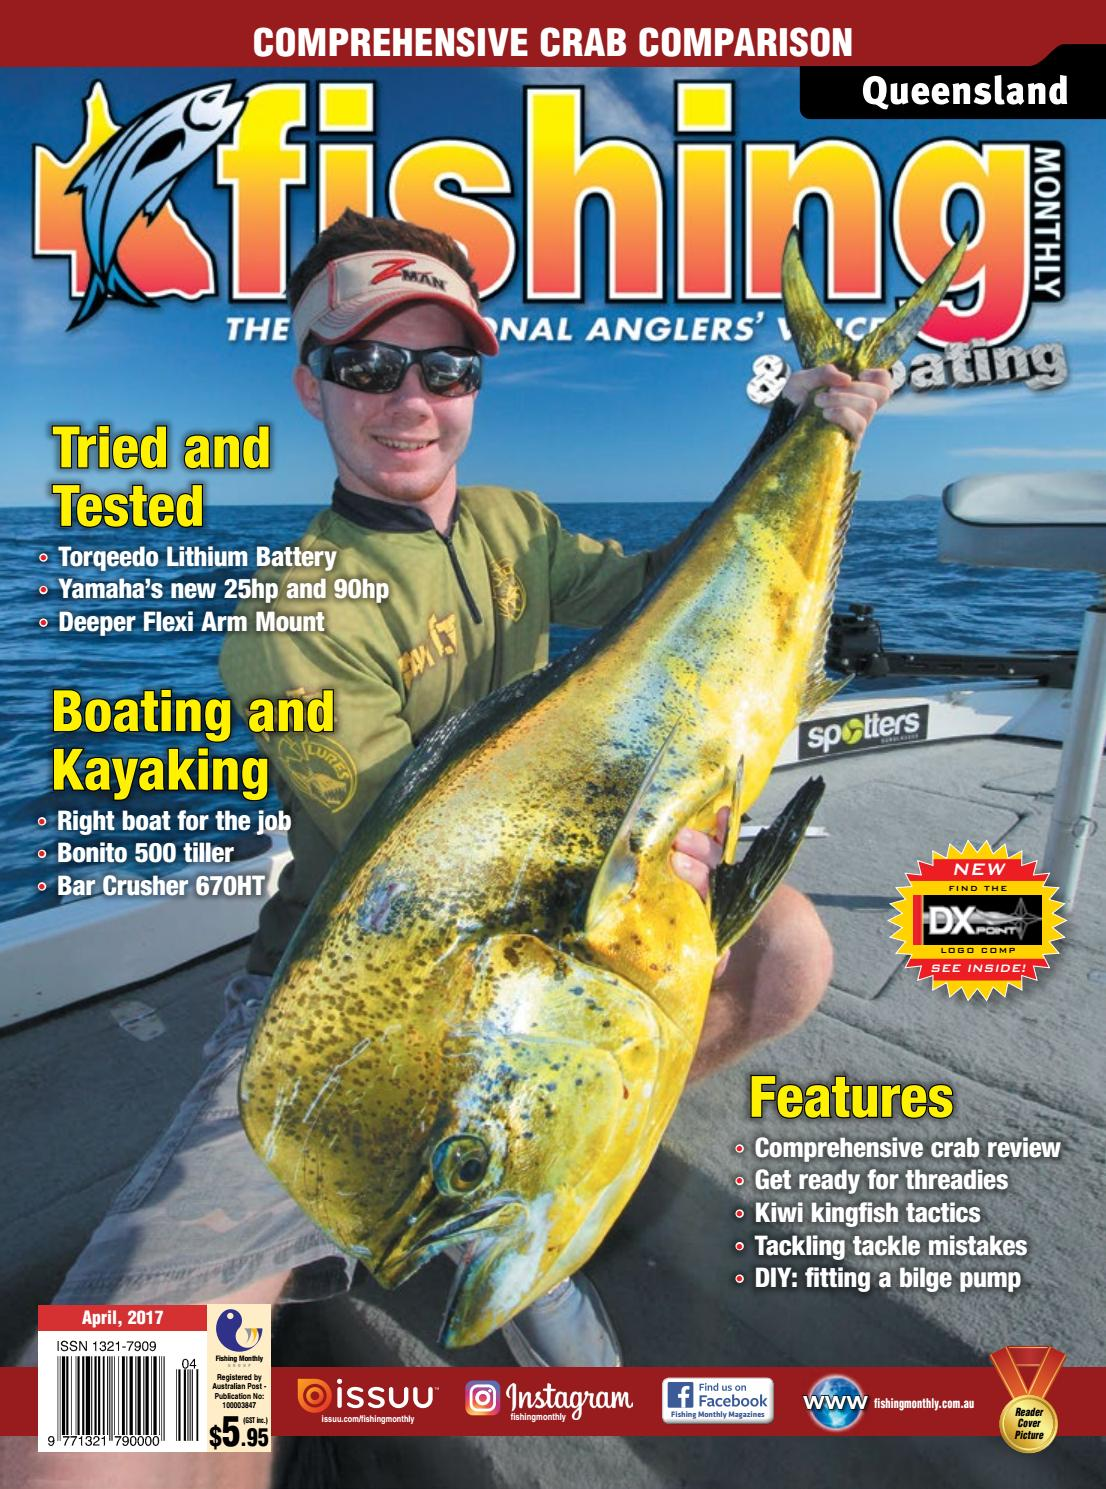 Queensland Fishing Monthly April 2017 by Fishing Monthly - issuu